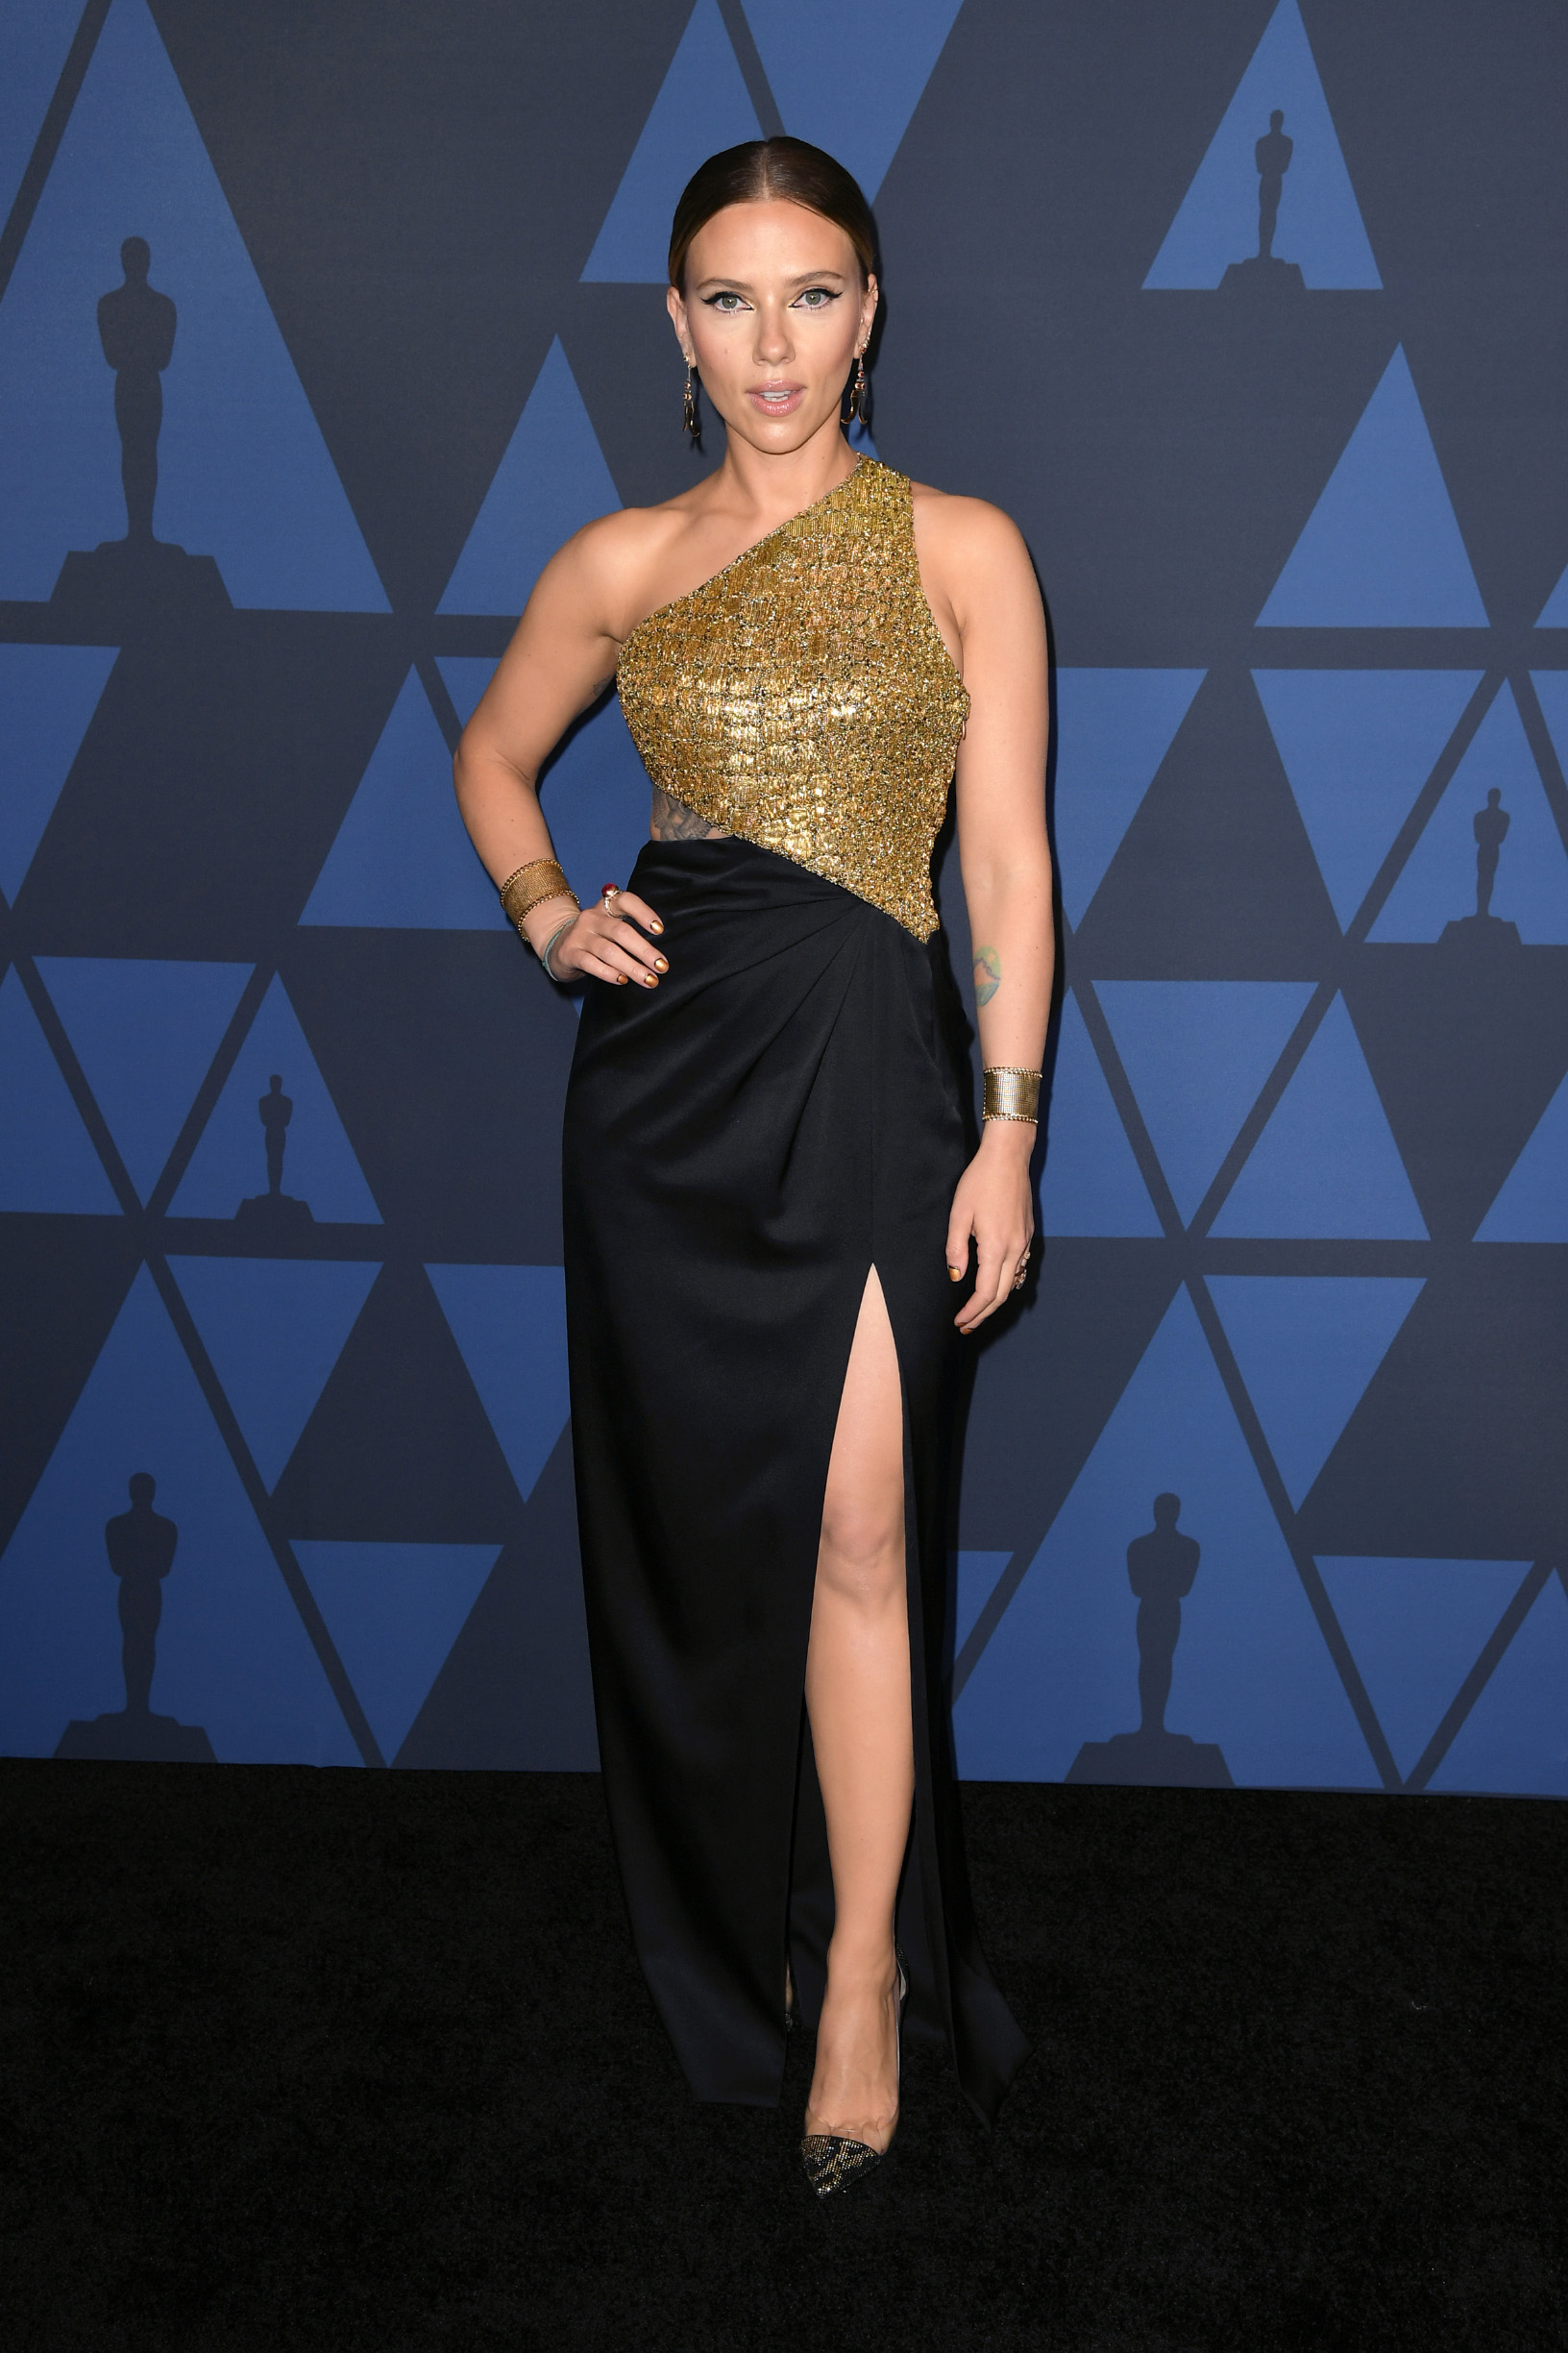 HOLLYWOOD, CALIFORNIA - OCTOBER 27: Scarlett Johansson attends the Academy Of Motion Picture Arts And Sciences' 11th Annual Governors Awards at The Ray Dolby Ballroom at Hollywood & Highland Center on October 27, 2019 in Hollywood, California. (Photo by Kevin Winter/Getty Images)